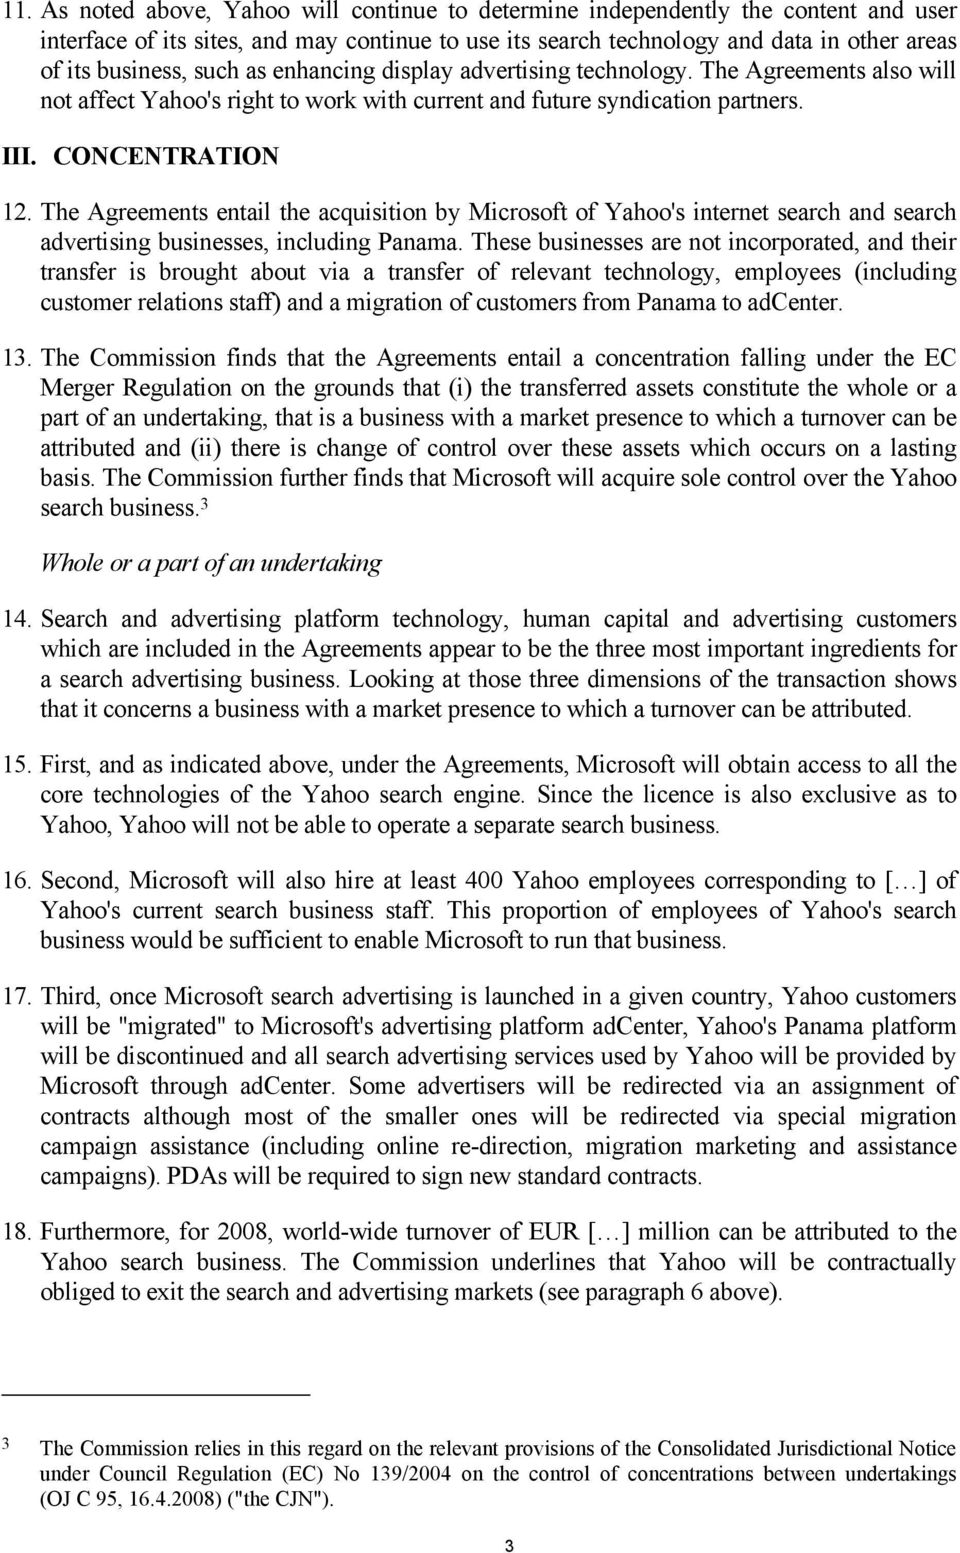 The Agreements entail the acquisition by Microsoft of Yahoo's internet search and search advertising businesses, including Panama.